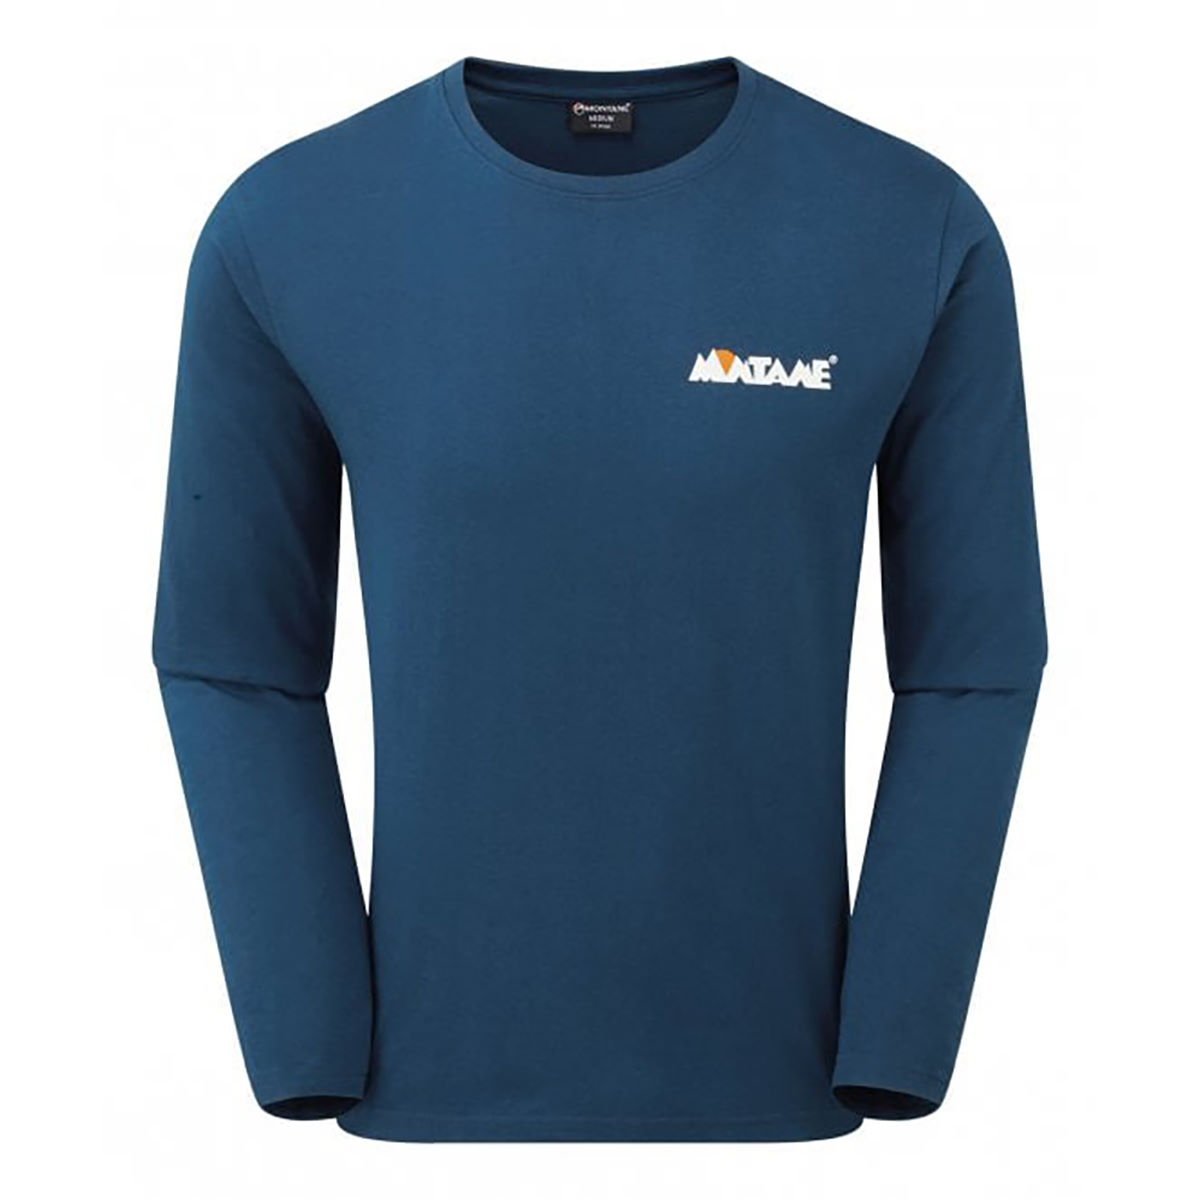 Montane 1993 Long Sleeve T-shirt - Medium Narwhal Blue  T-shirts